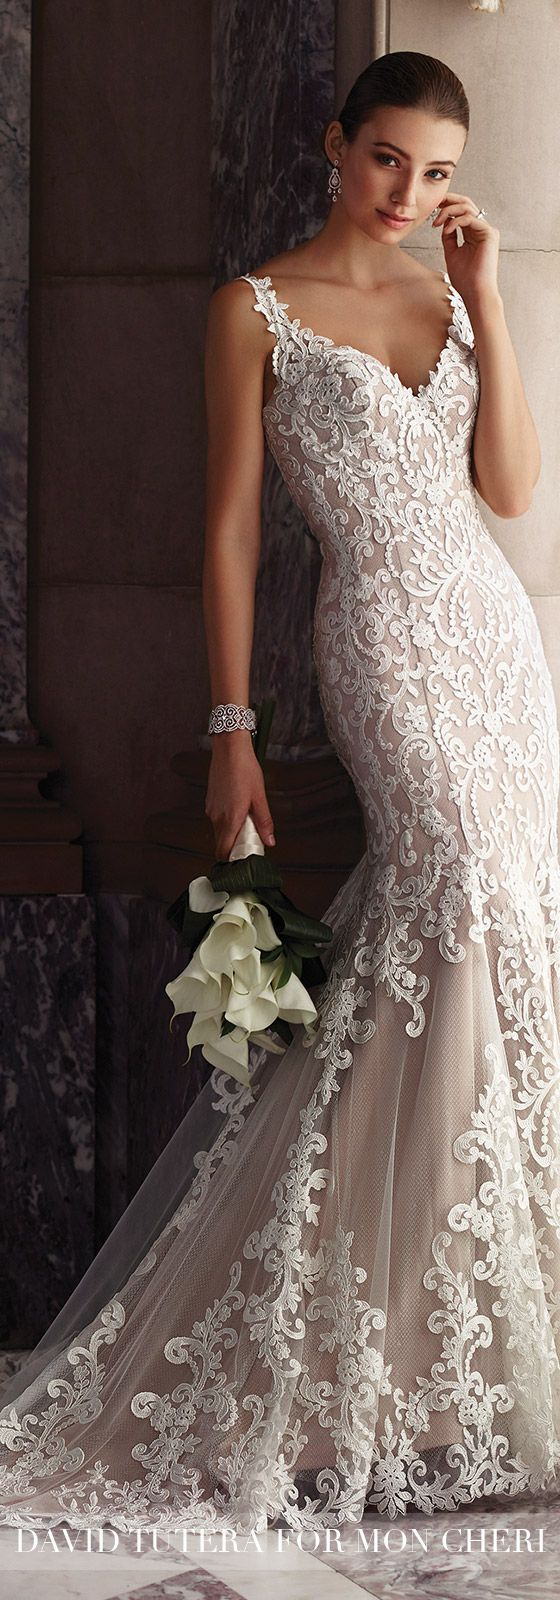 Wedding Dress by David Tutera for Mon Cheri 2017 Bridal Collection | Style No. » 117268 Amber